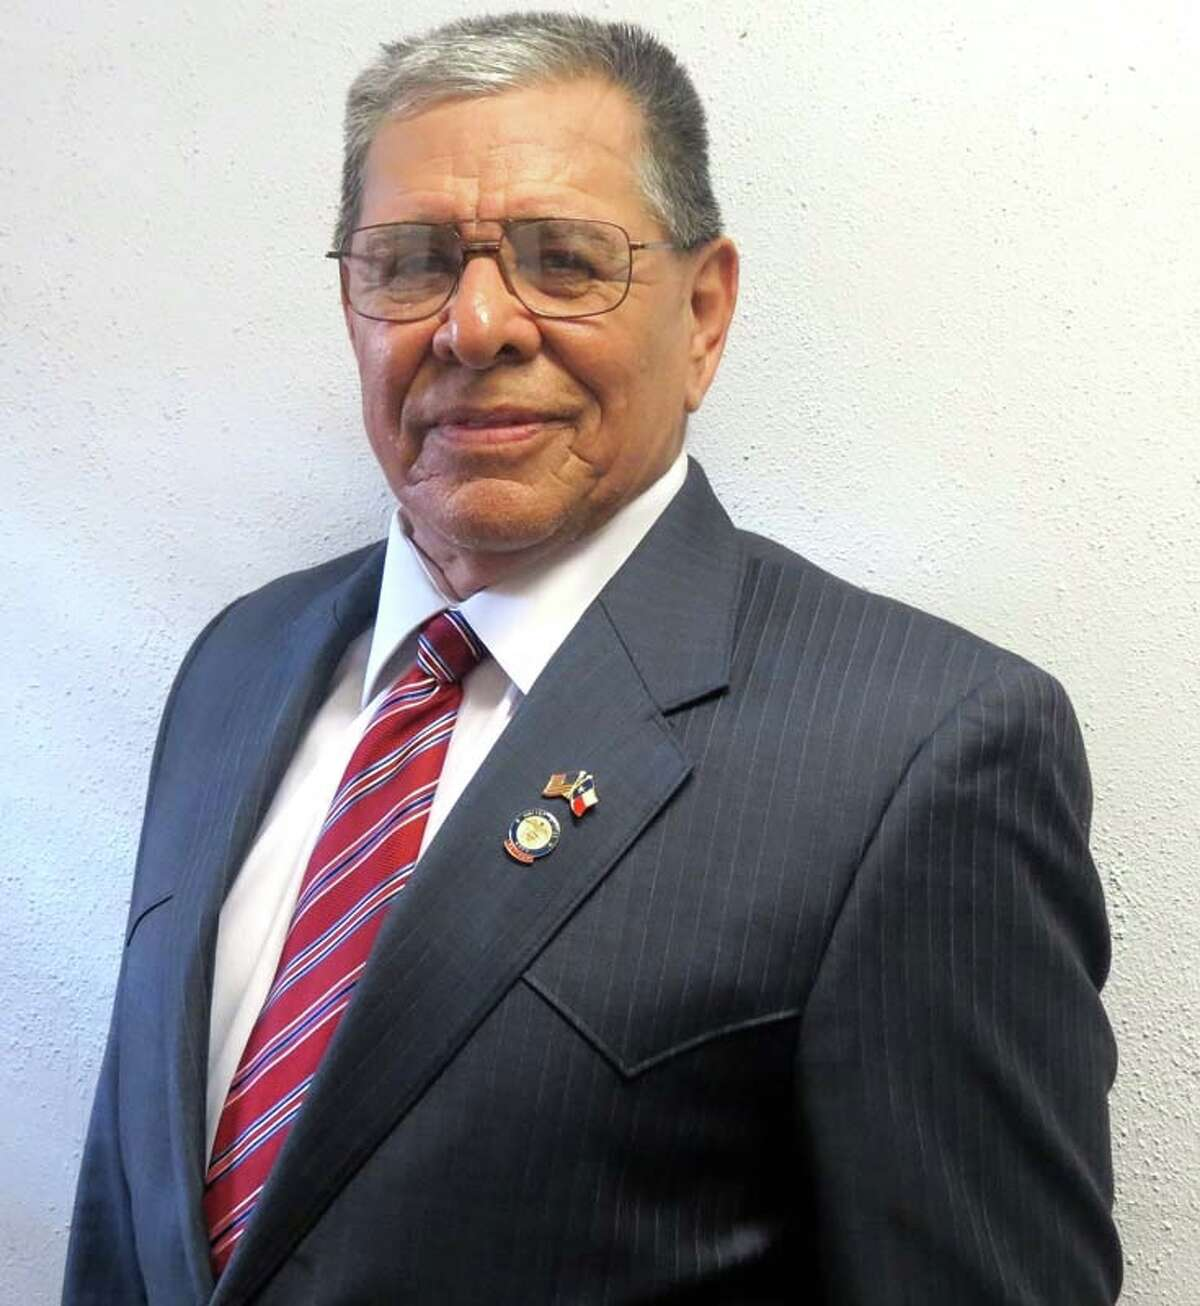 Joe Vera is a candidate for District 3 on the Rosenberg City Council